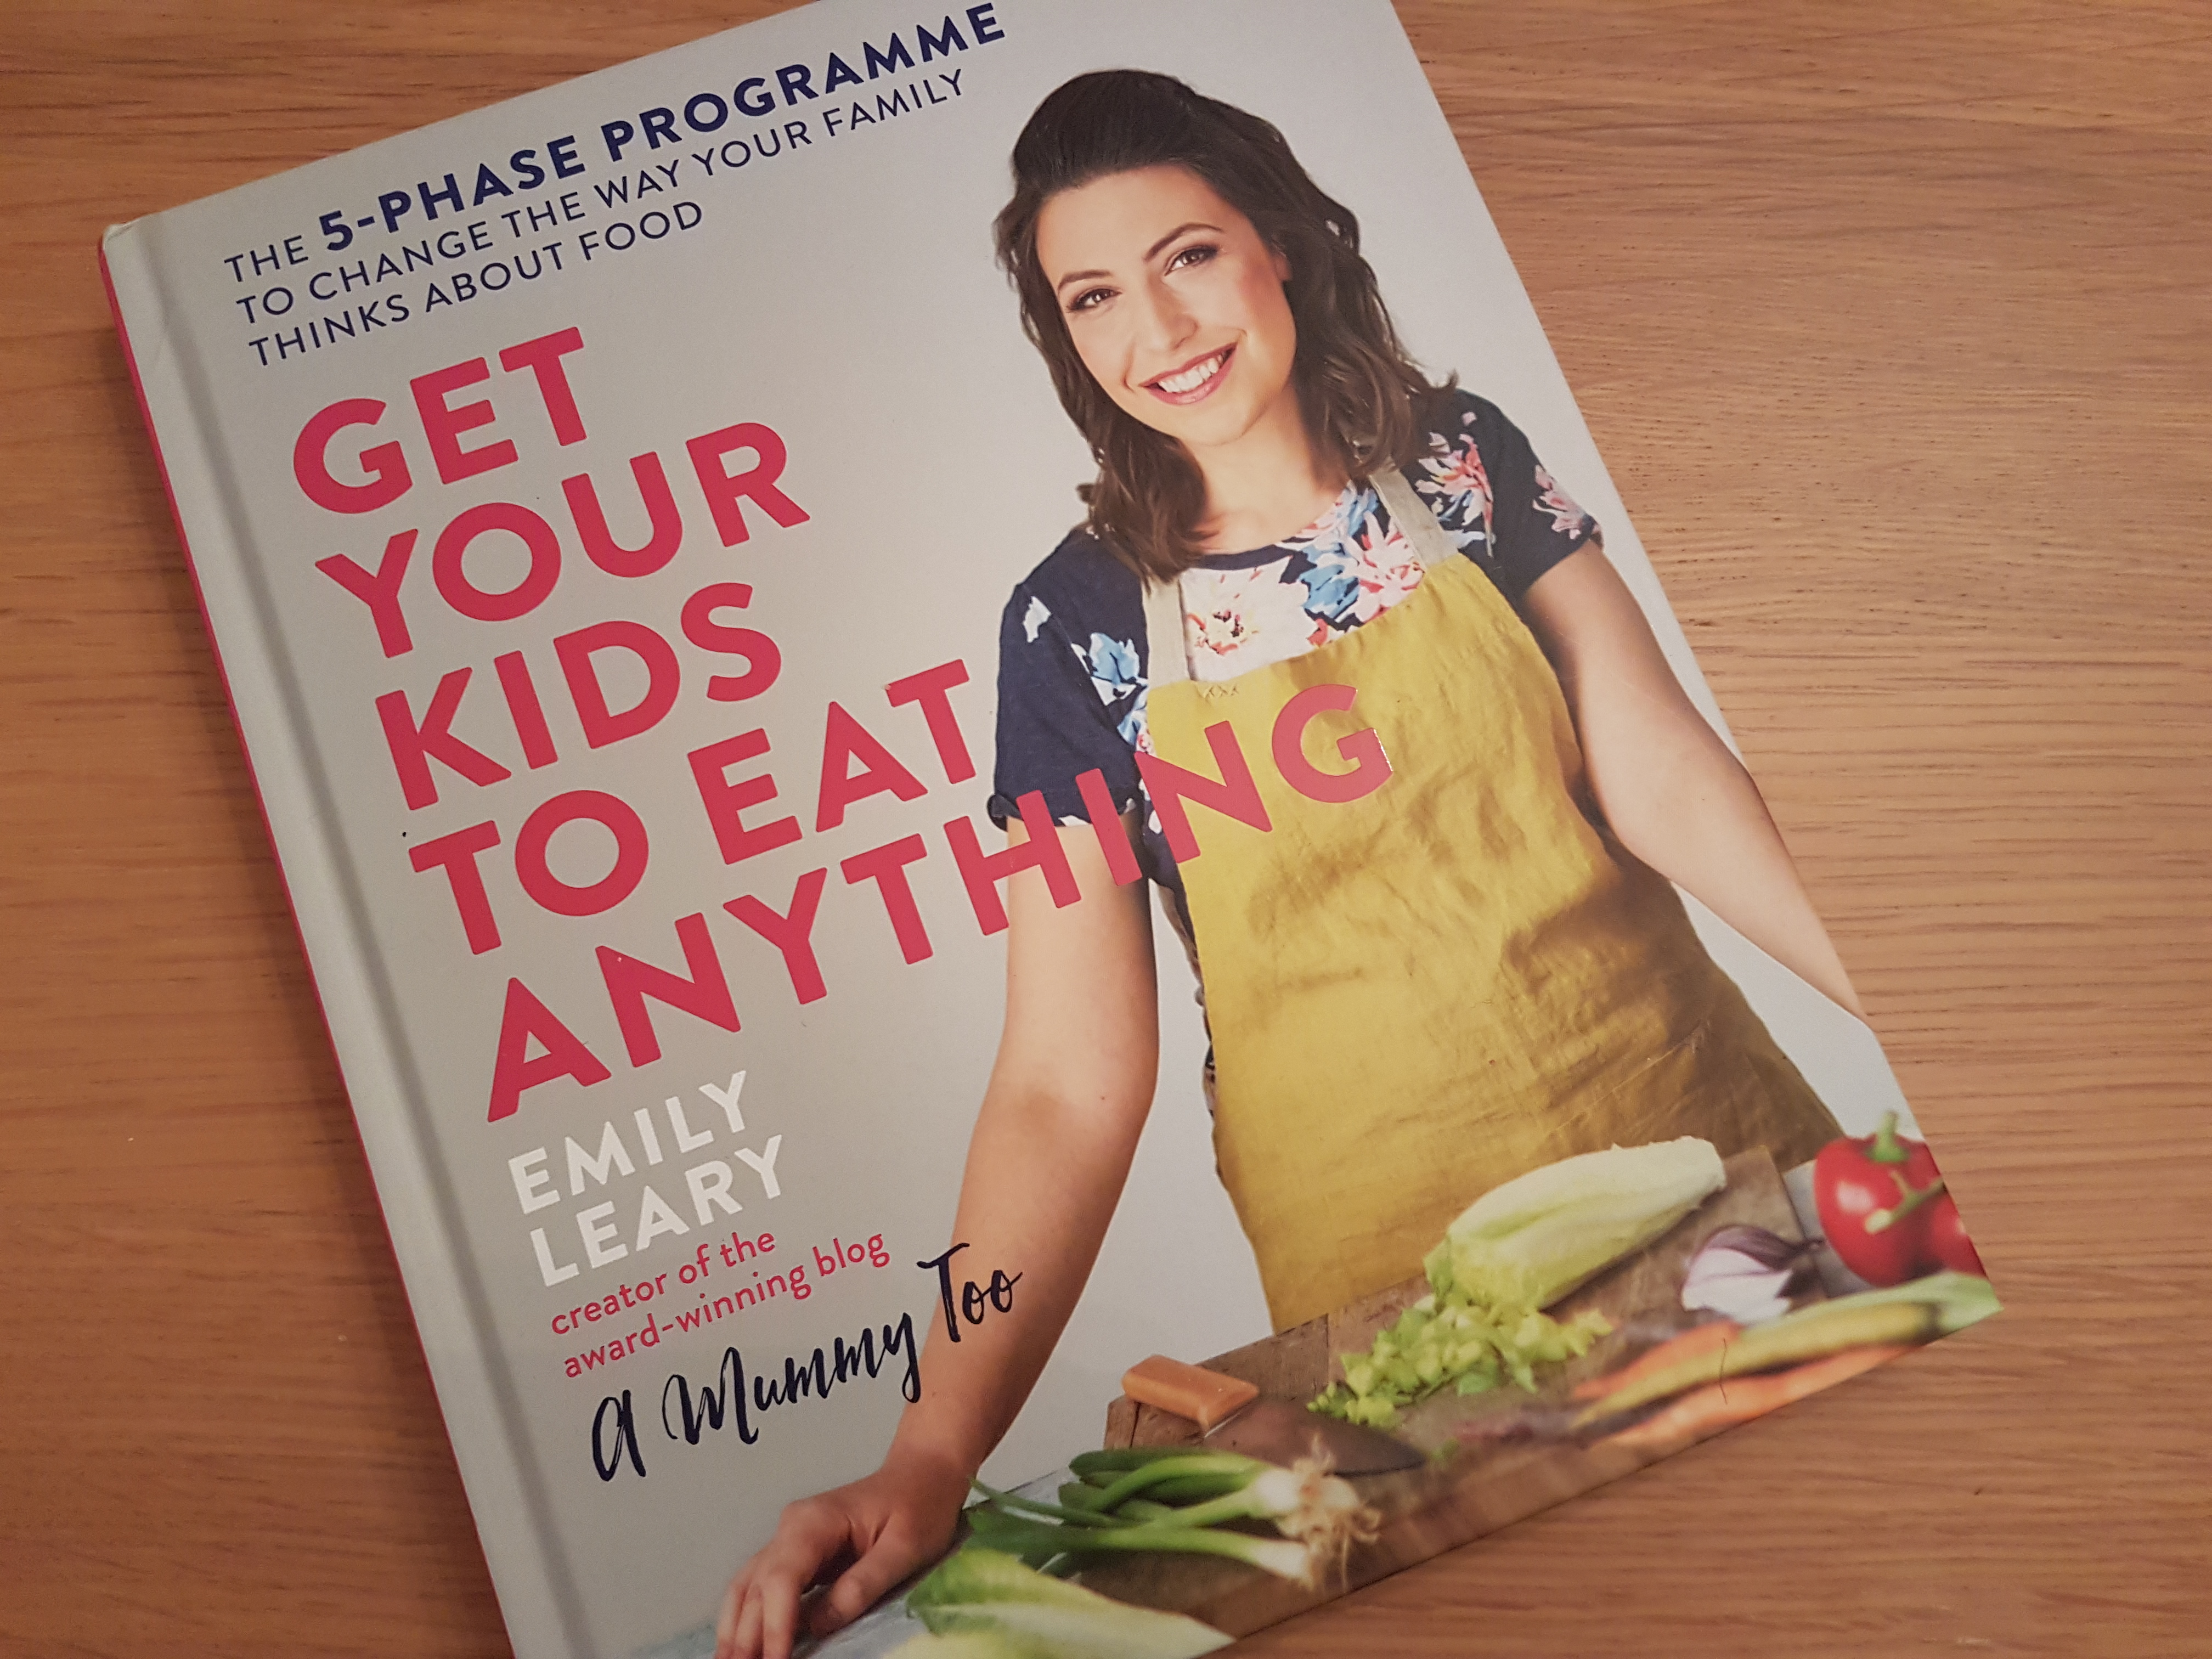 Review of Get Your Kids to Eat Anything by Emily Leary